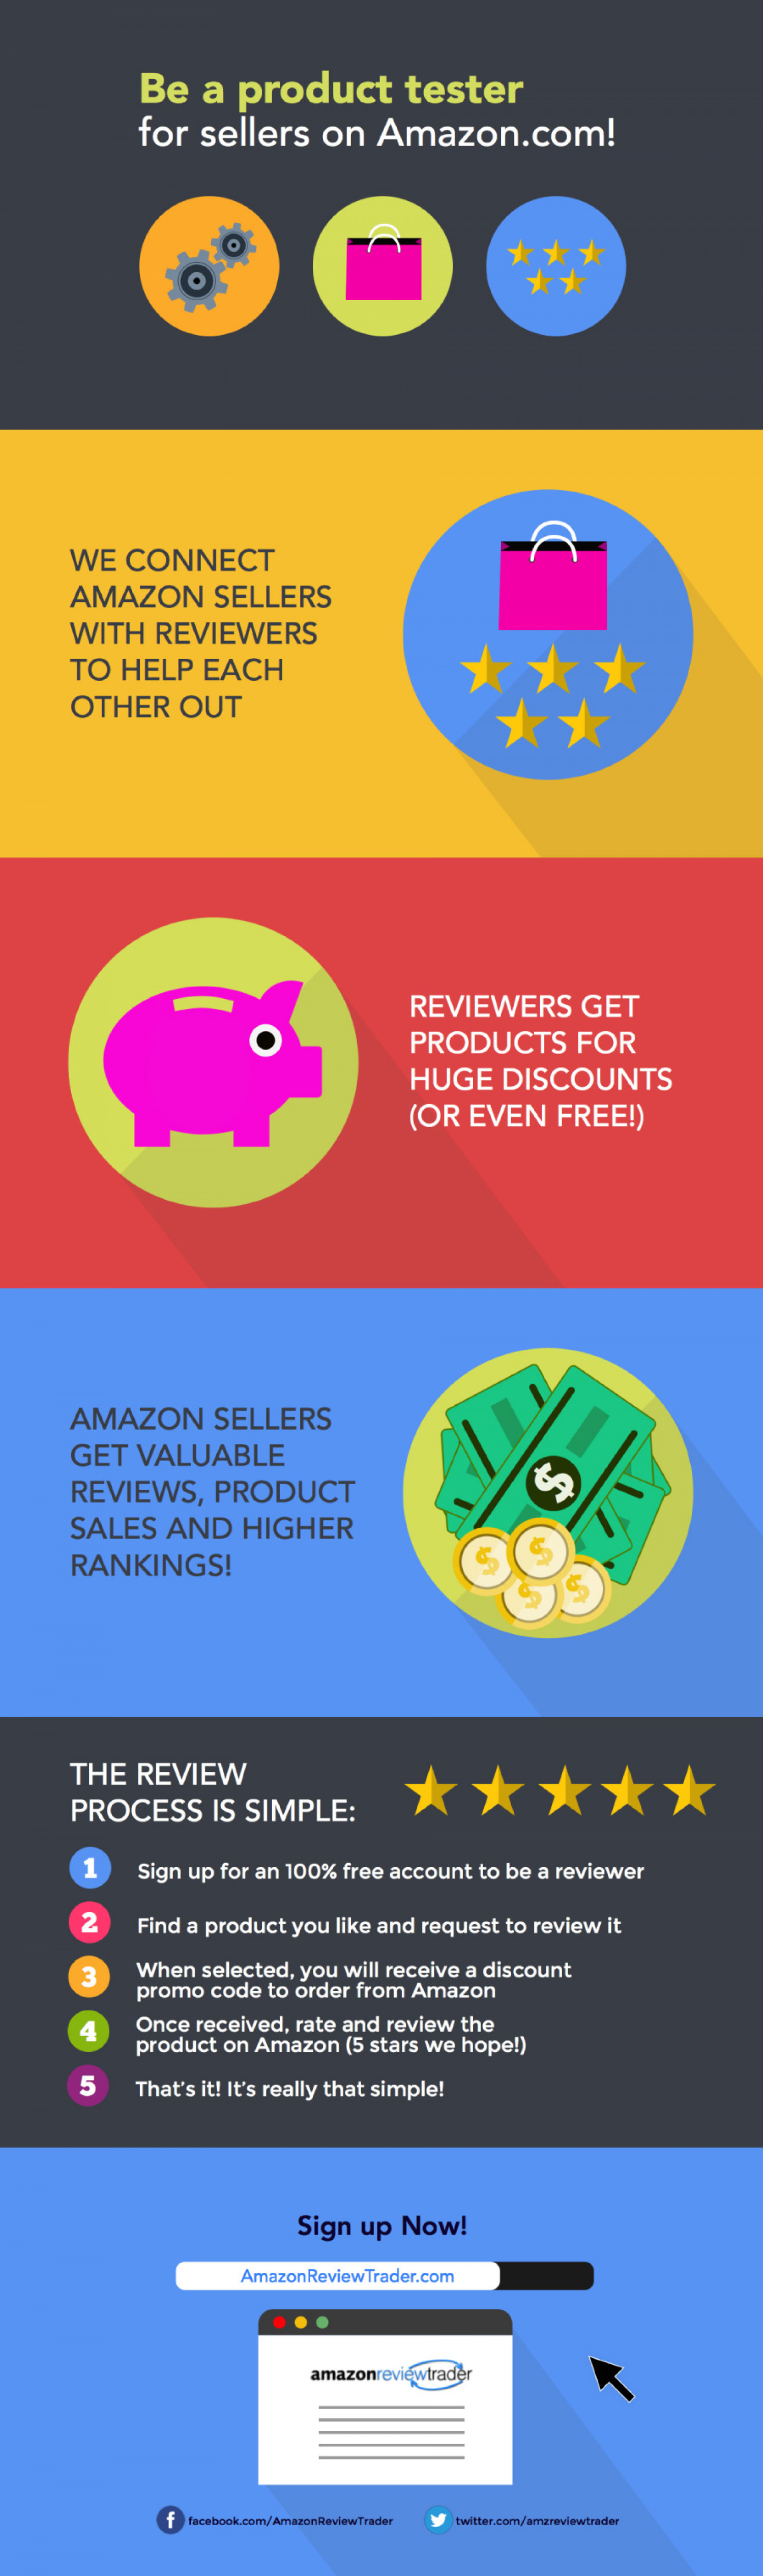 Amazon Review Network - Get Amazon Reviews Infographic